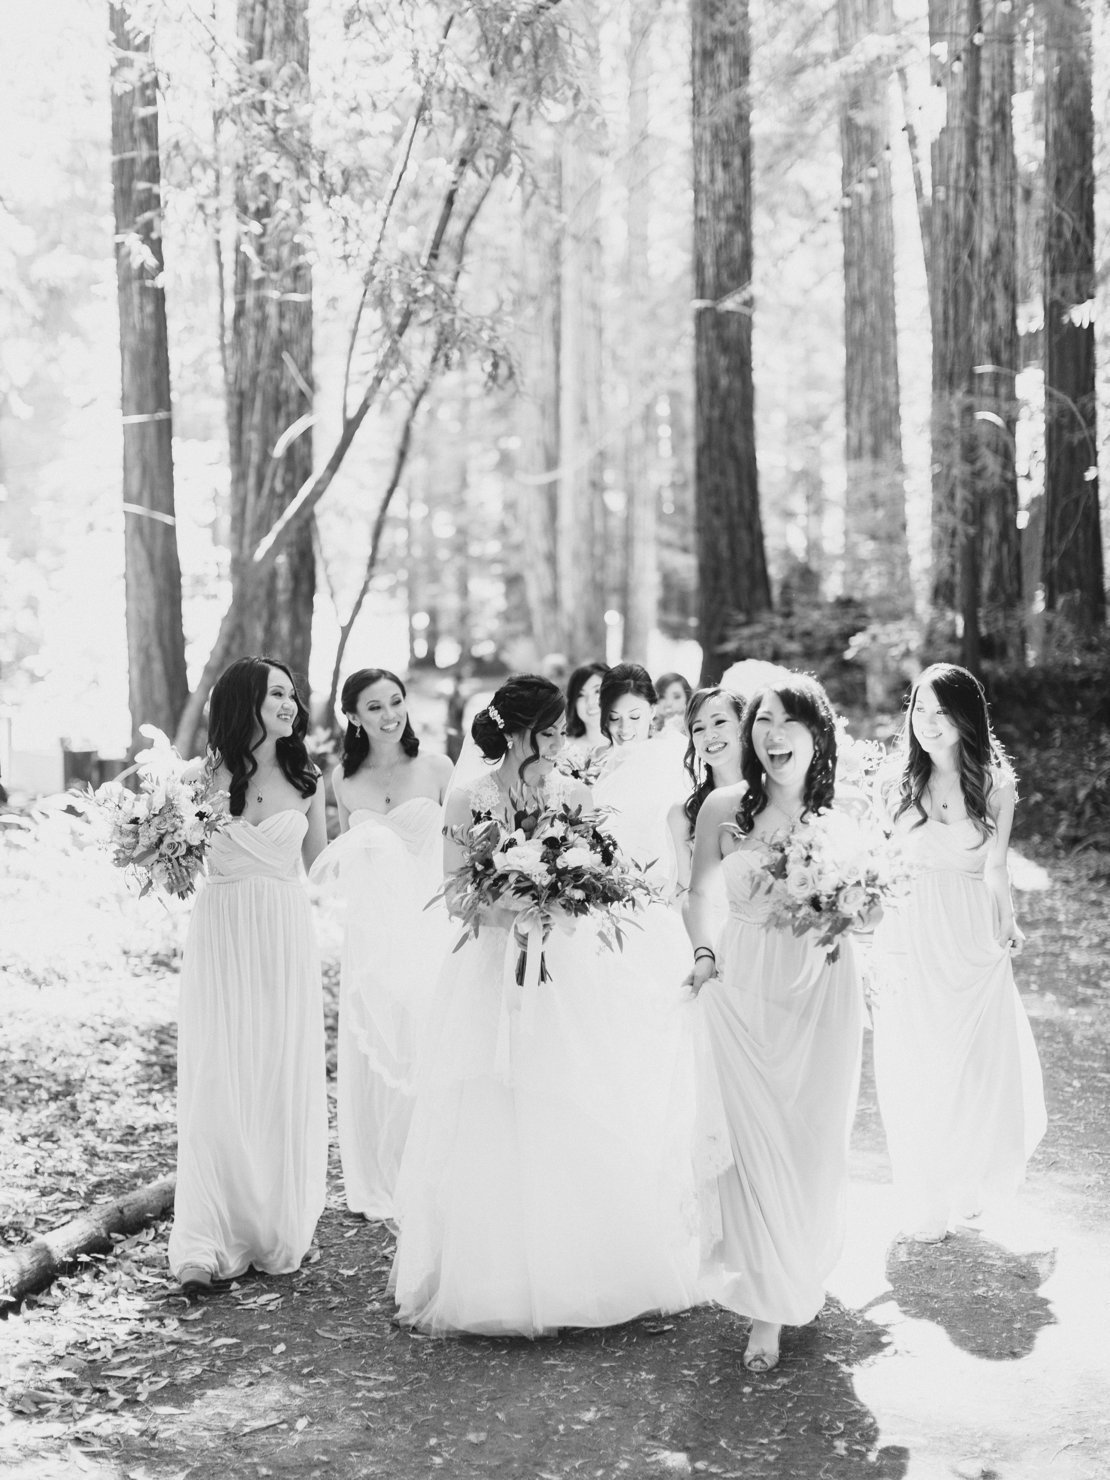 California Romantic Fine Art Wedding Photography at Chenoweth Woods \ Northern California Film Wedding Photographer_0062